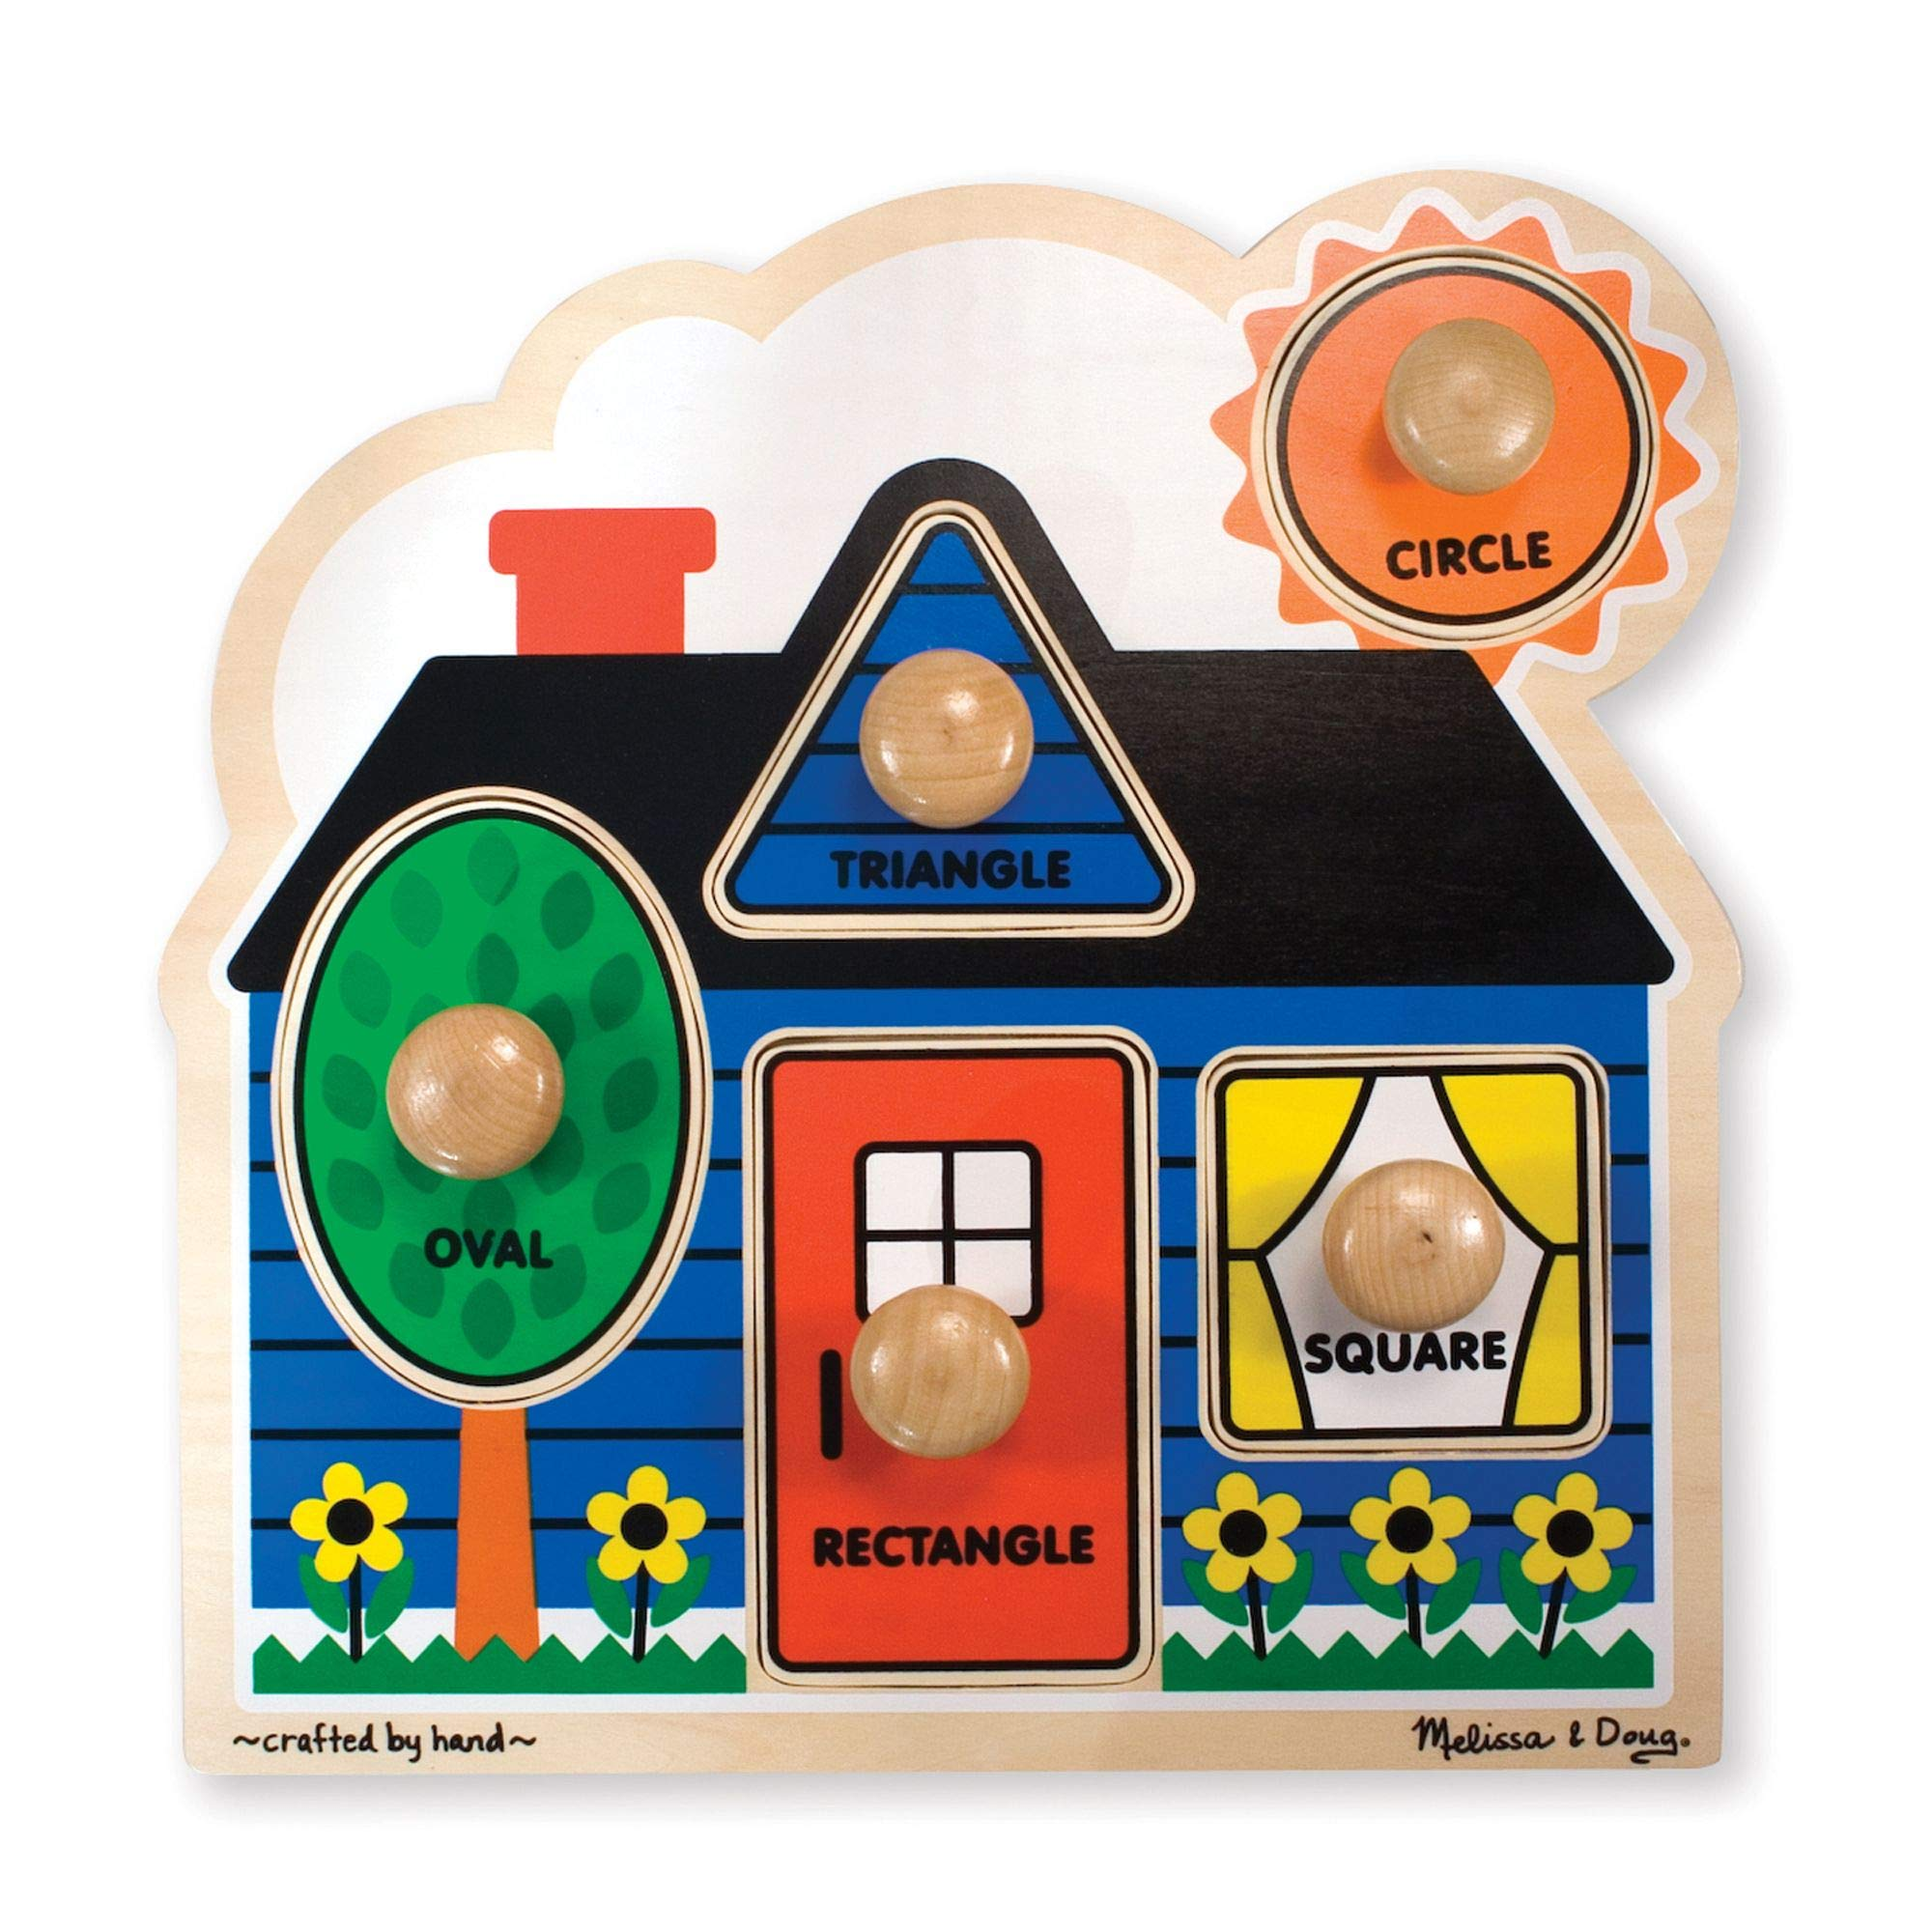 Melissa & Doug First Shapes Jumbo Knob Puzzle, Colorful Artwork, Extra-Thick Wooden Construction, 5 Pieces, 15.5″ H × 11.2″ W × 1.6″ L